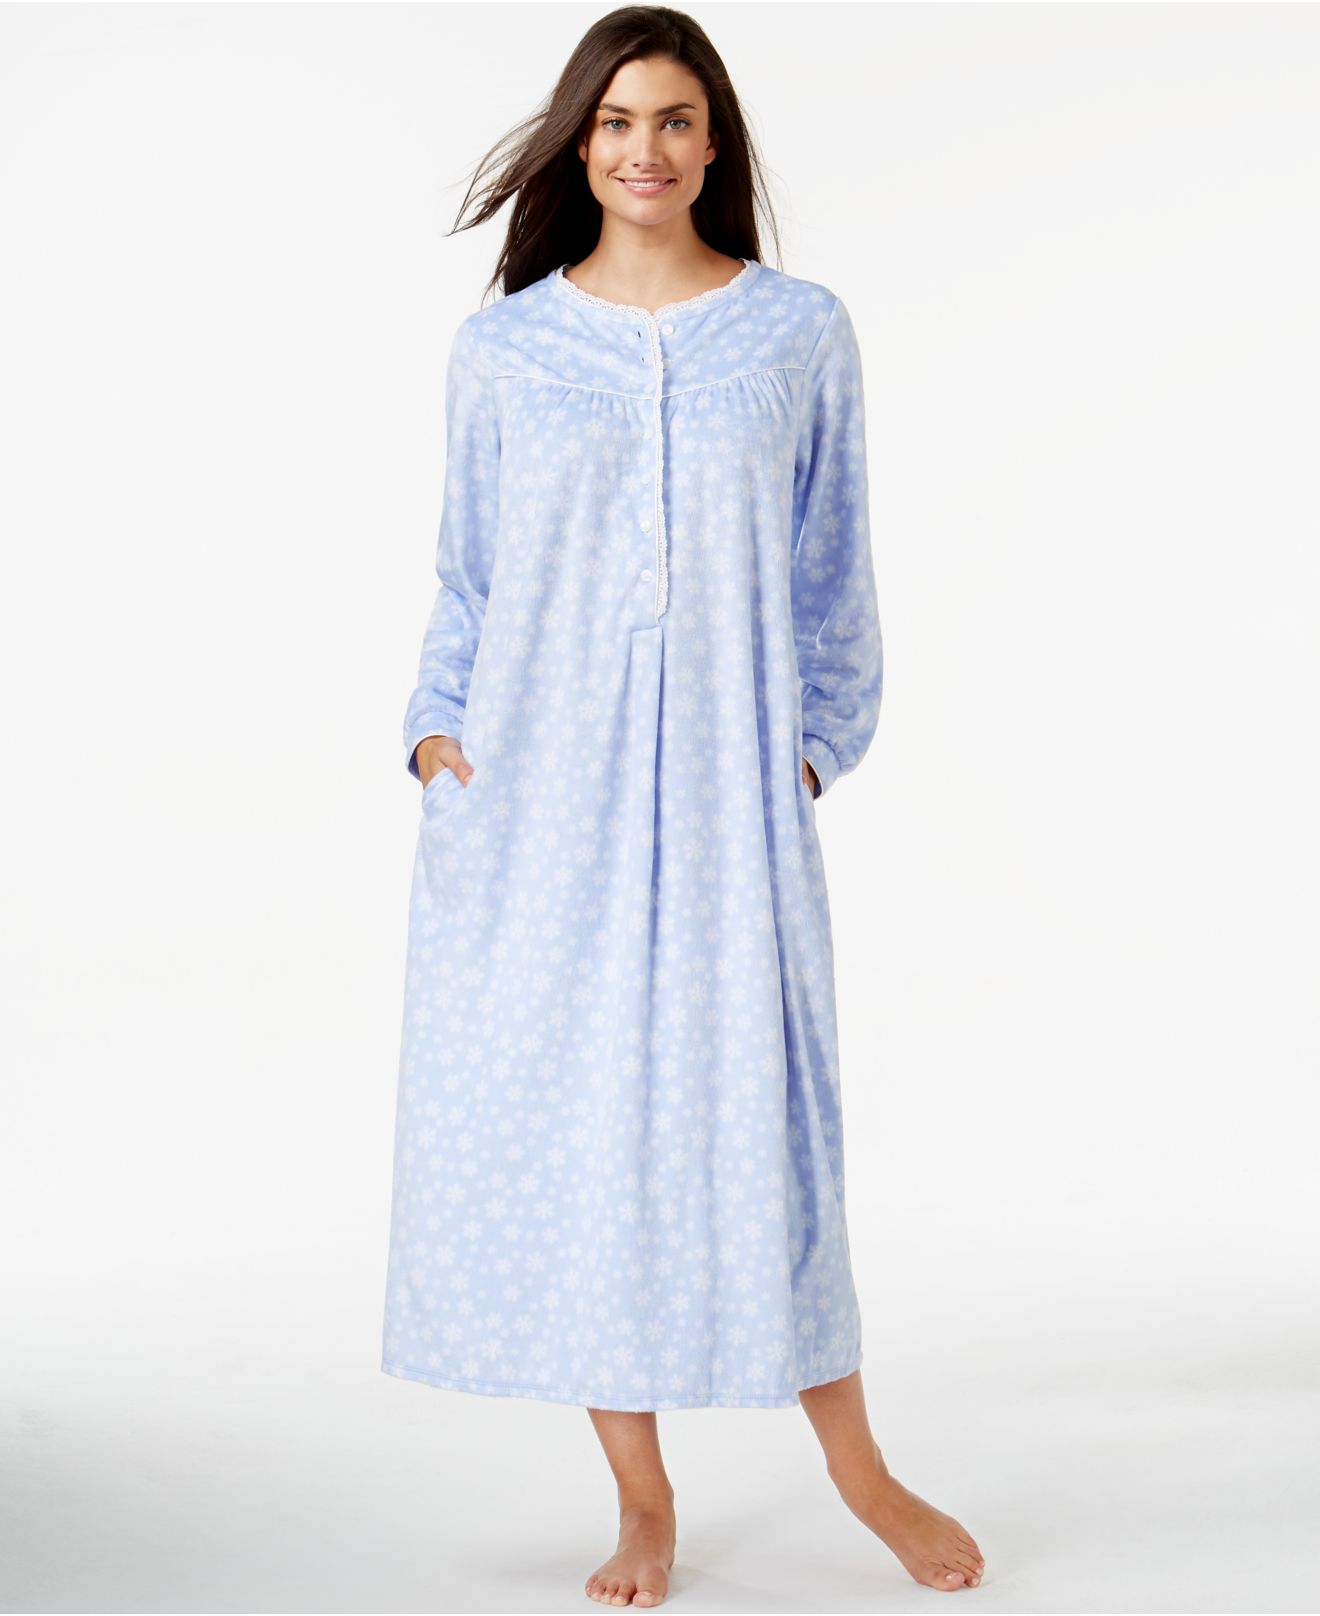 Lyst - Lanz Of Salzburg Long Fleece Nightgown in Blue